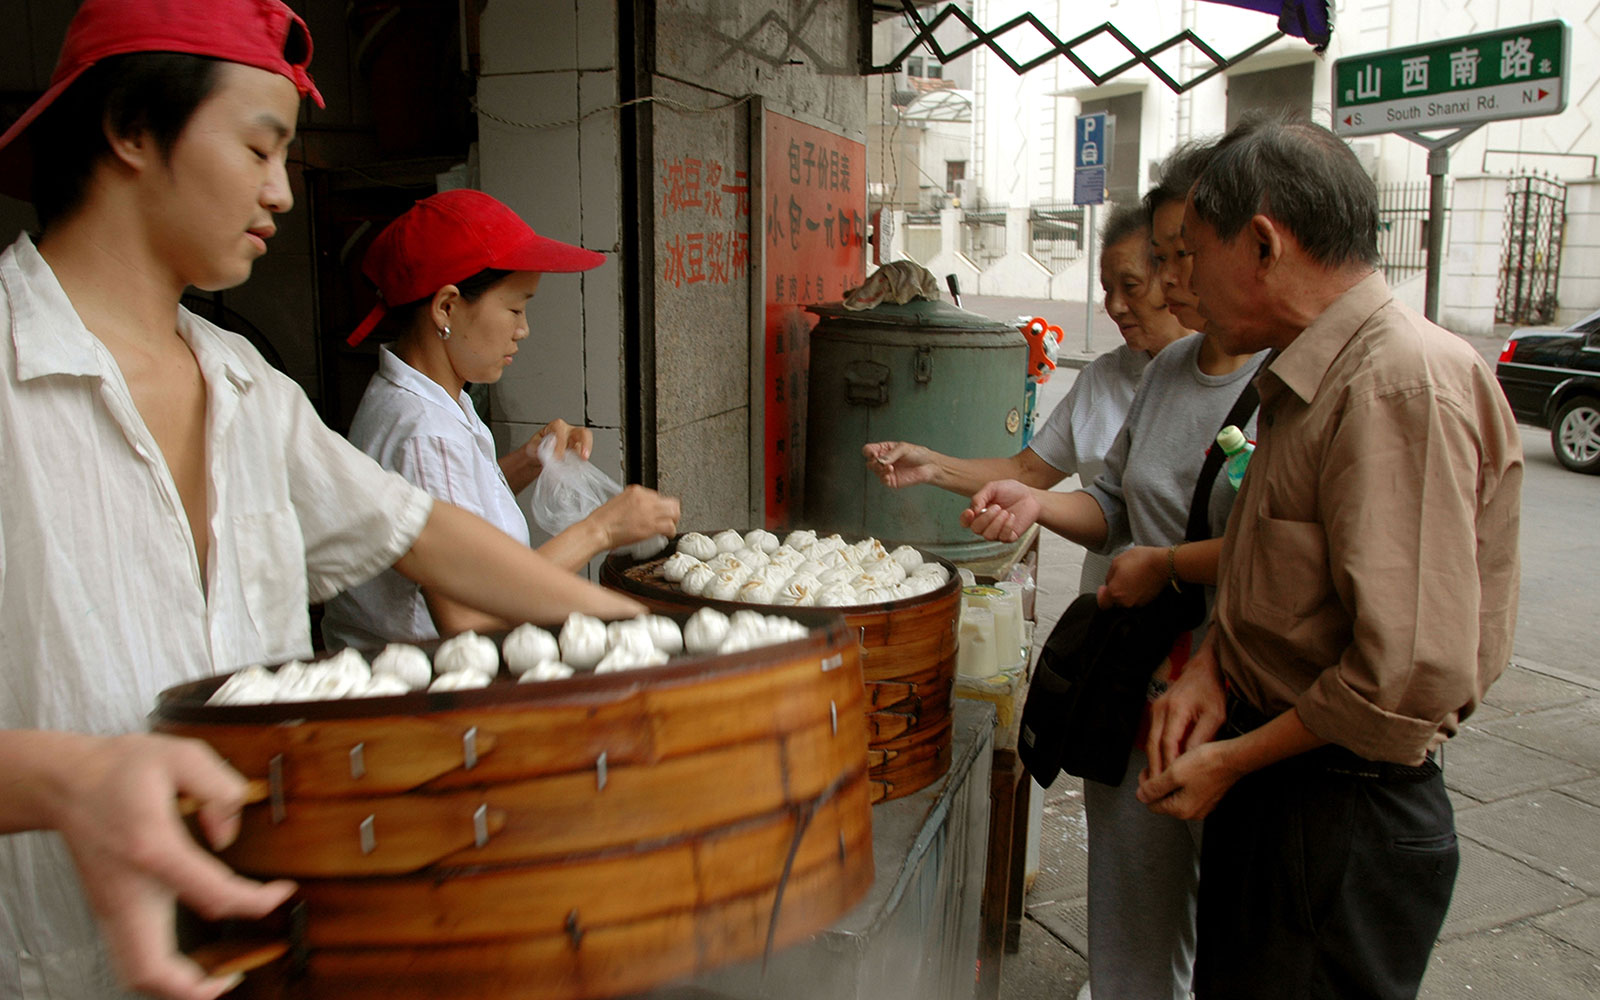 Tours Worth Taking: A Street Food Breakfast Tour in Shanghai